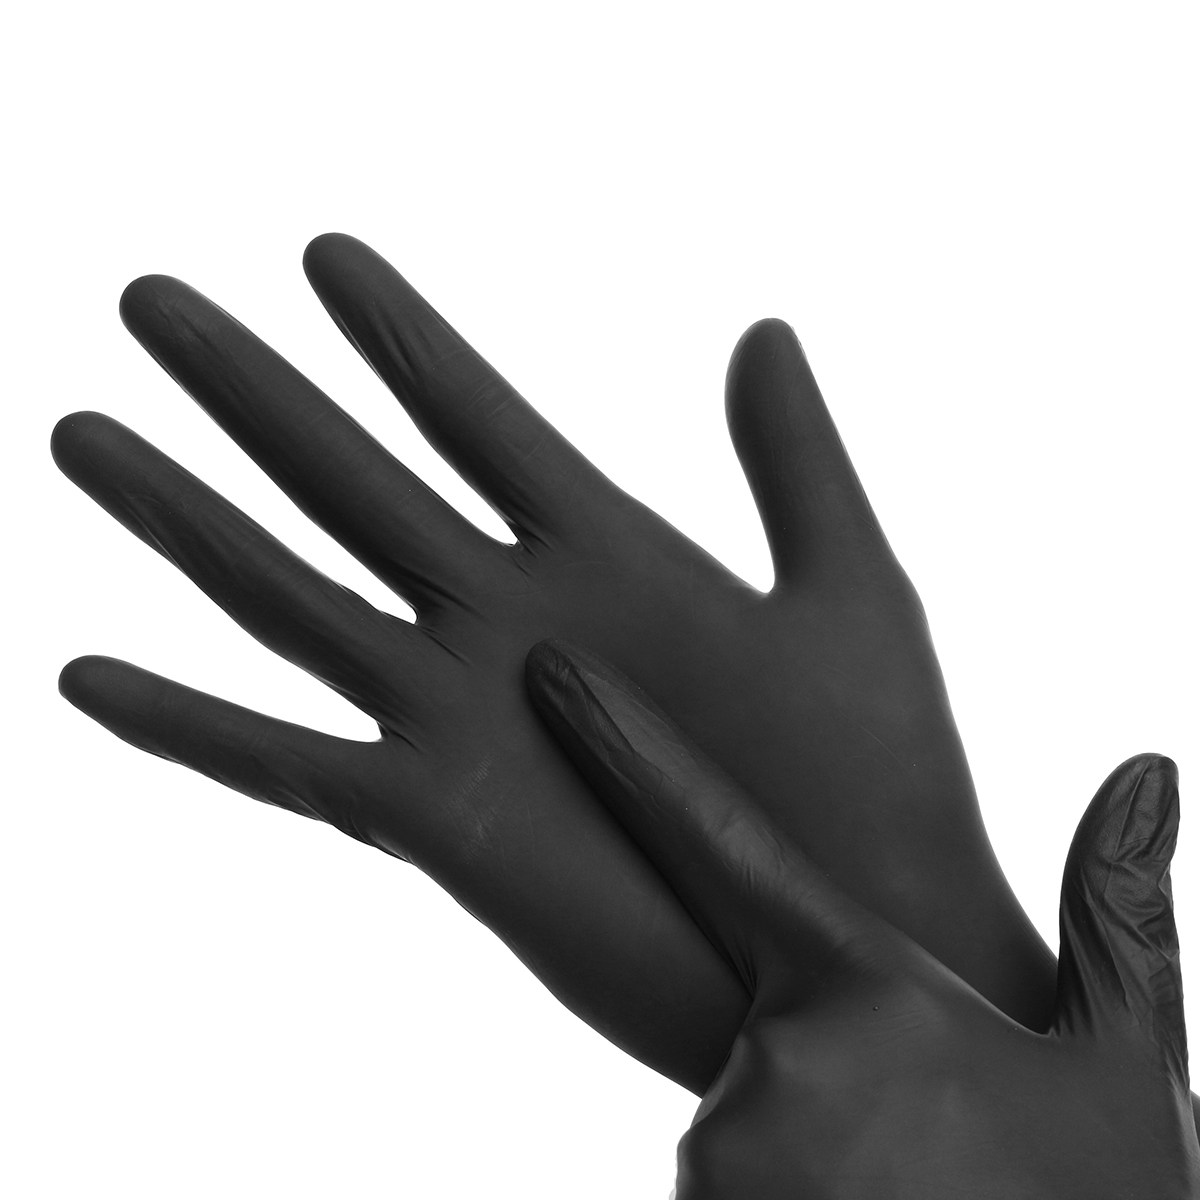 NEW 100x Industrial Disposable Nitrile Latex Gloves Powder Free Medium/Large/X-Large Workplace Safety Hand Protect the chesapeake book of the dead – tombstones epitaphs histories reflections and oddments of the region